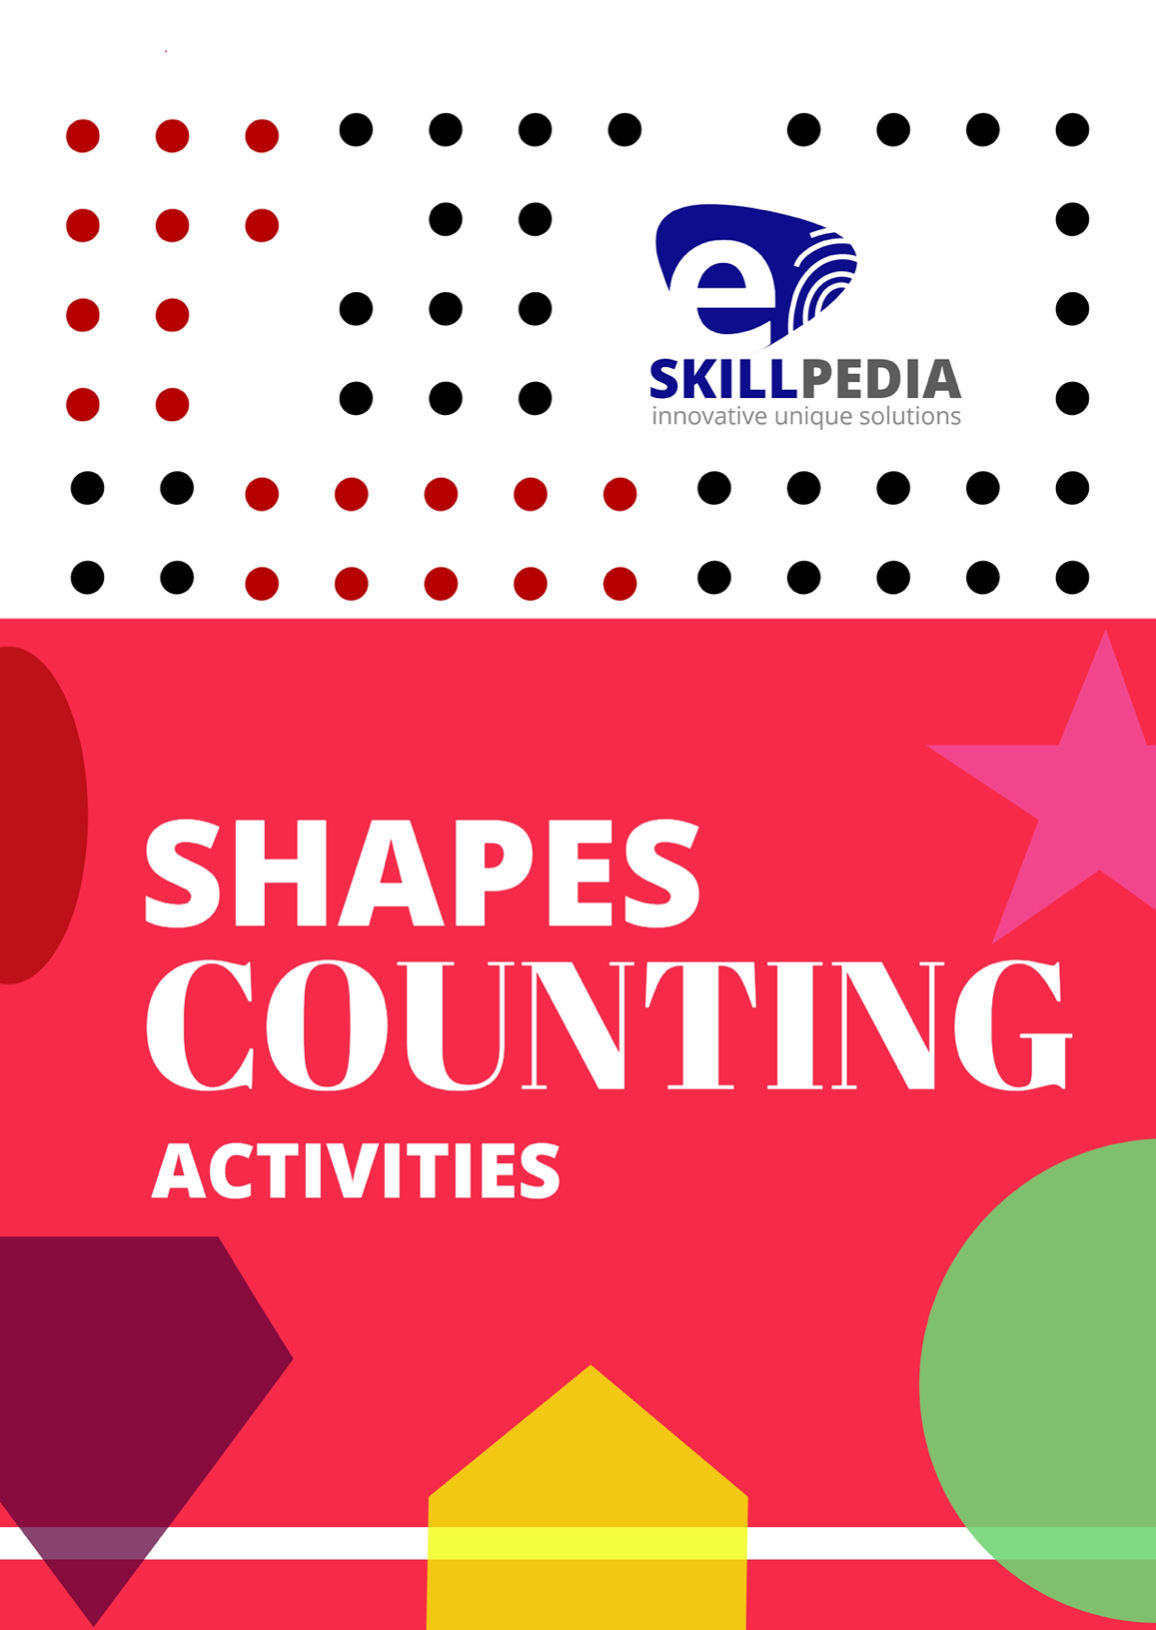 Shapes Counting Activities